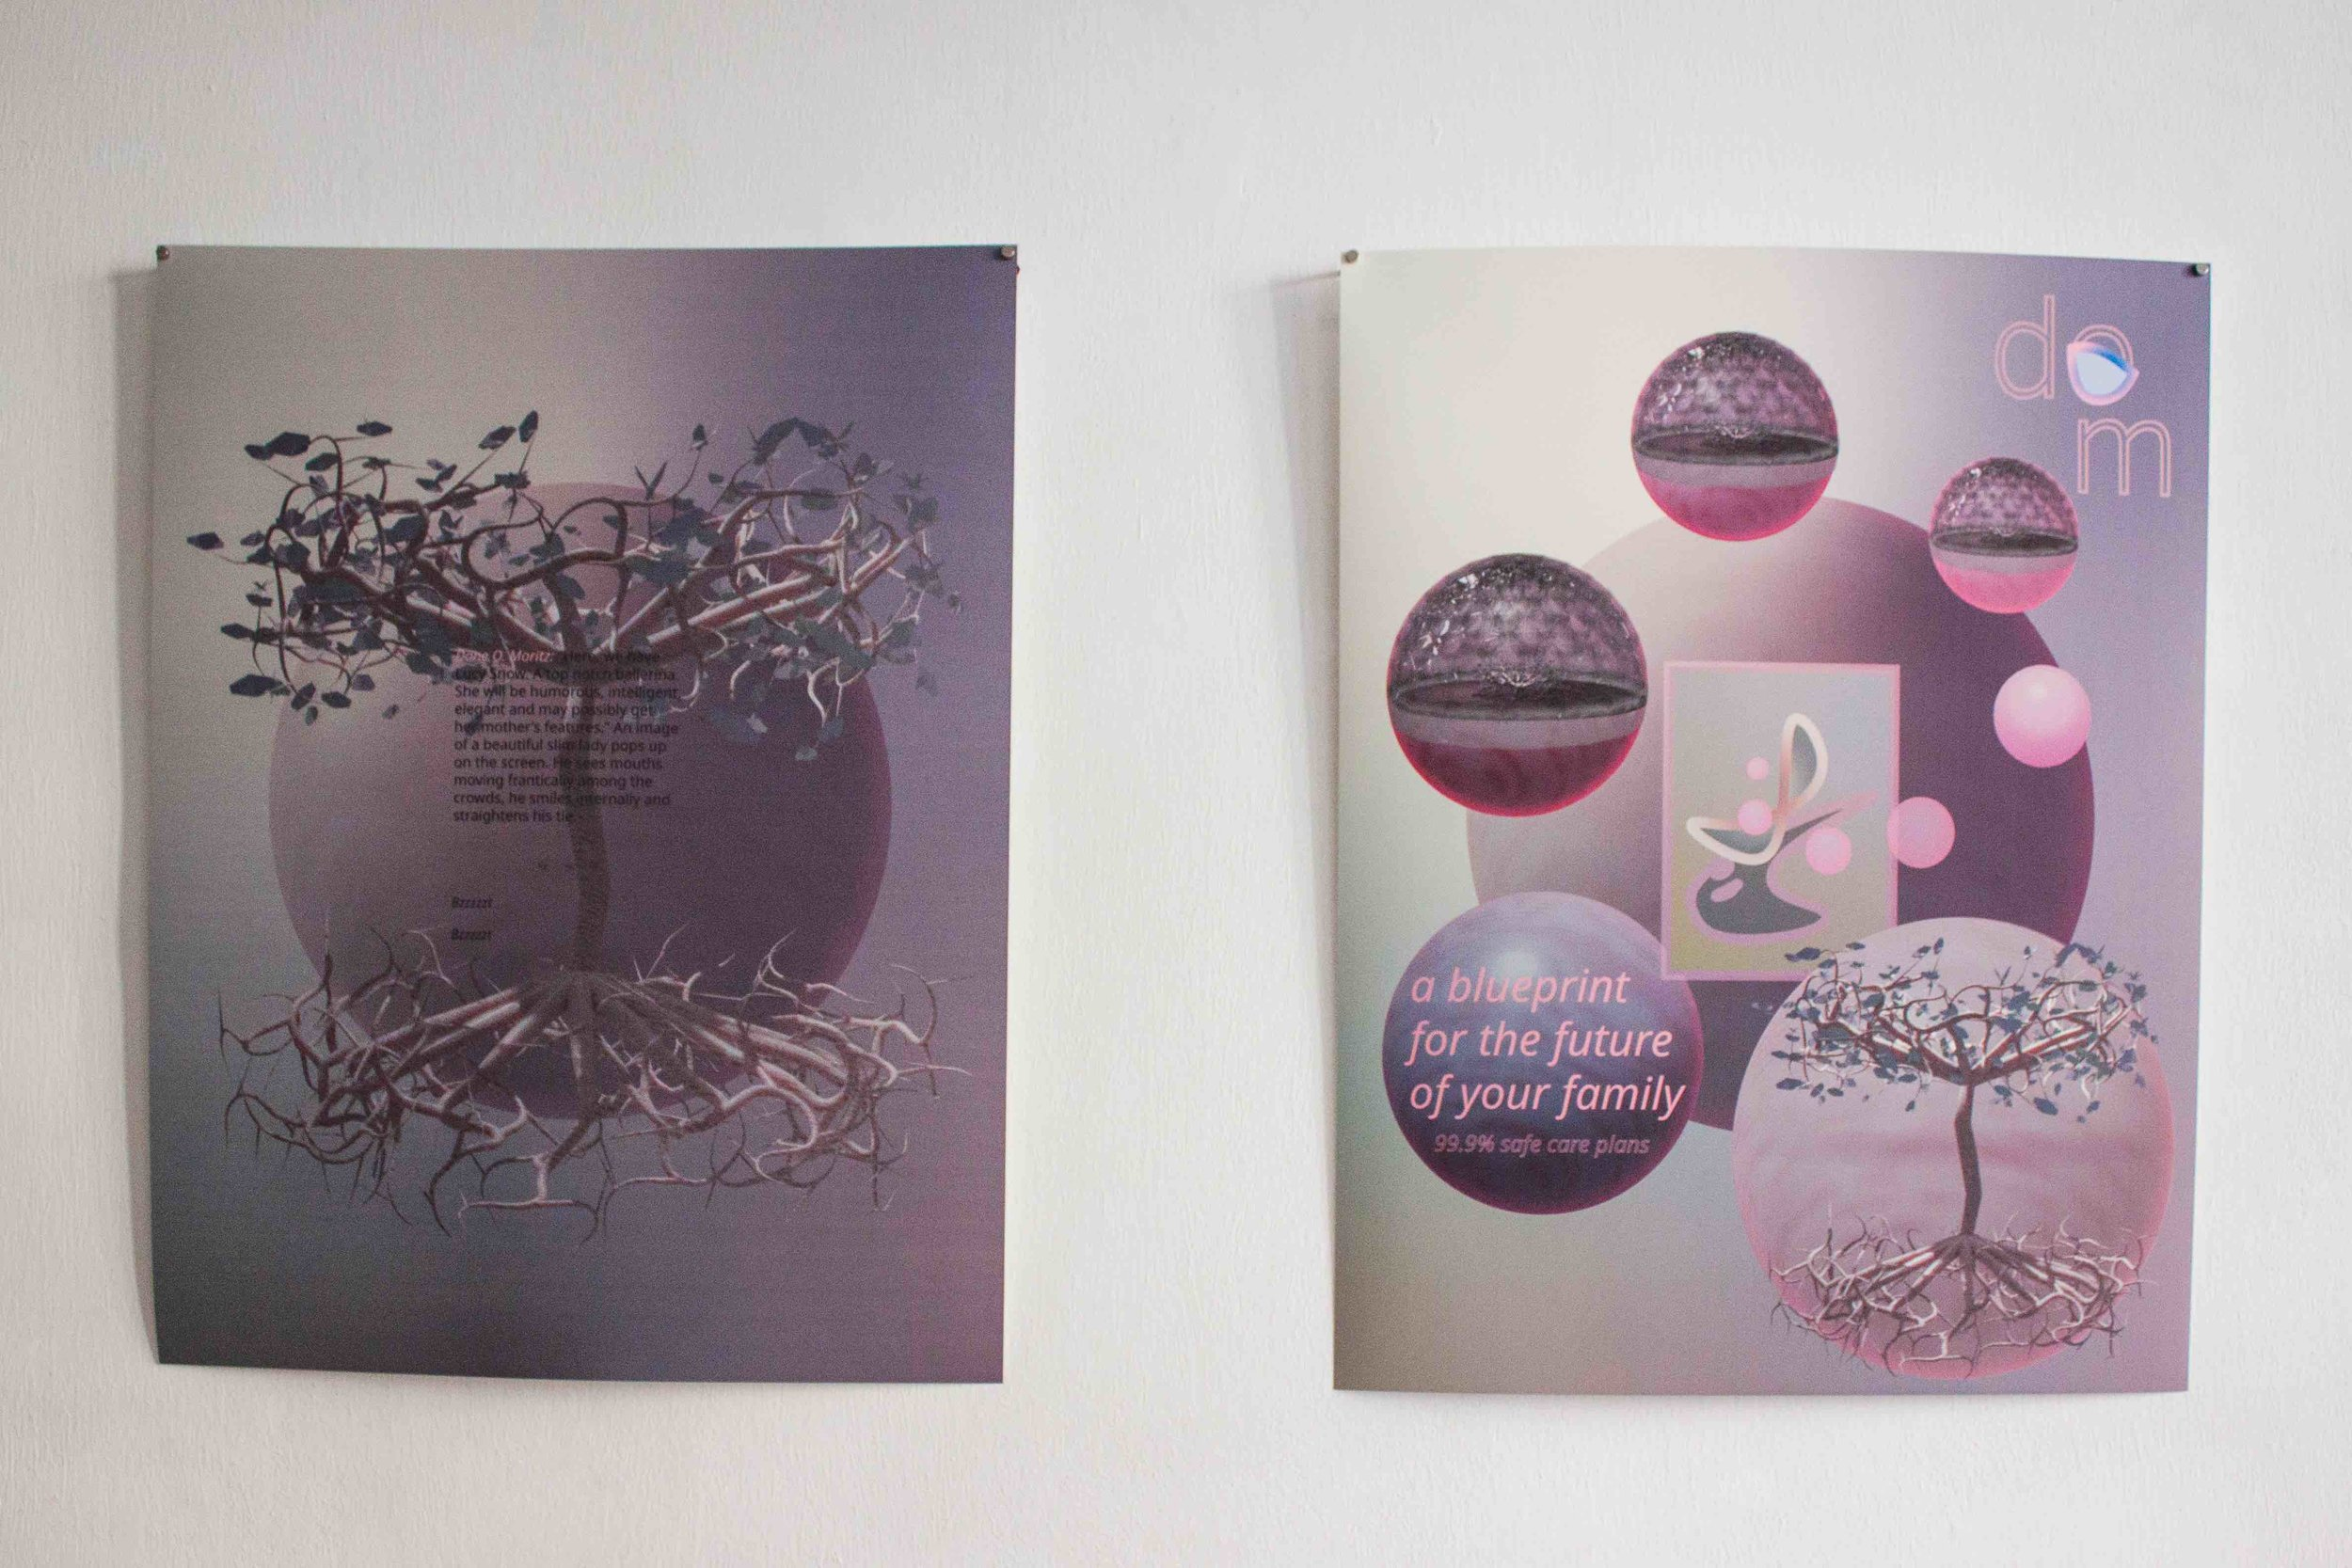 Denise Yap, 'Redundancy Notice', 2019, 2 printed posters with matt laminate, 42 x 59.4cm. Image courtesy of Grey Projects.